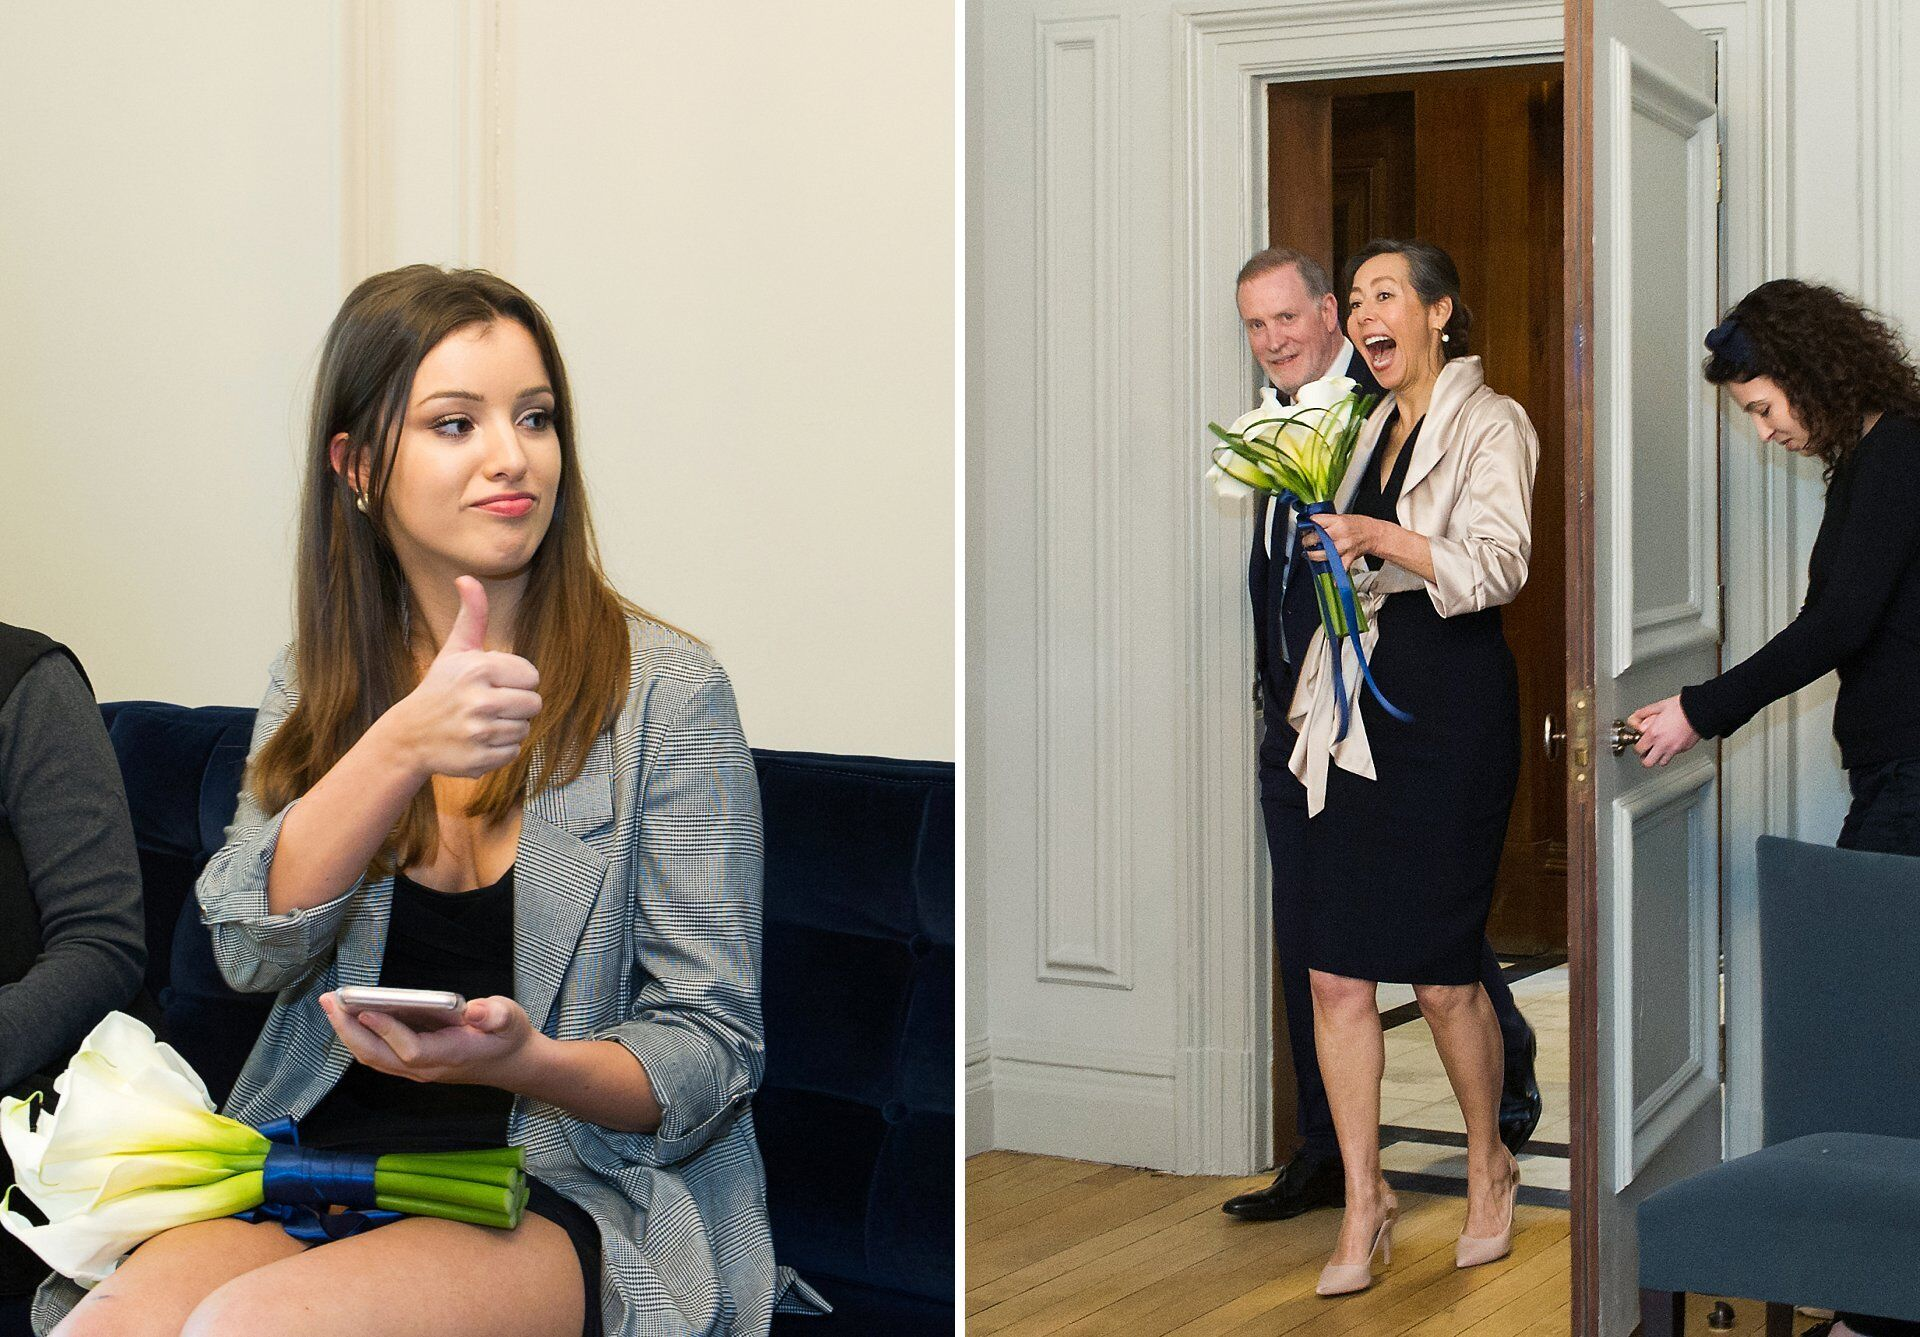 start of westminster wedding by quality london registry office wedding photographer emma duggan